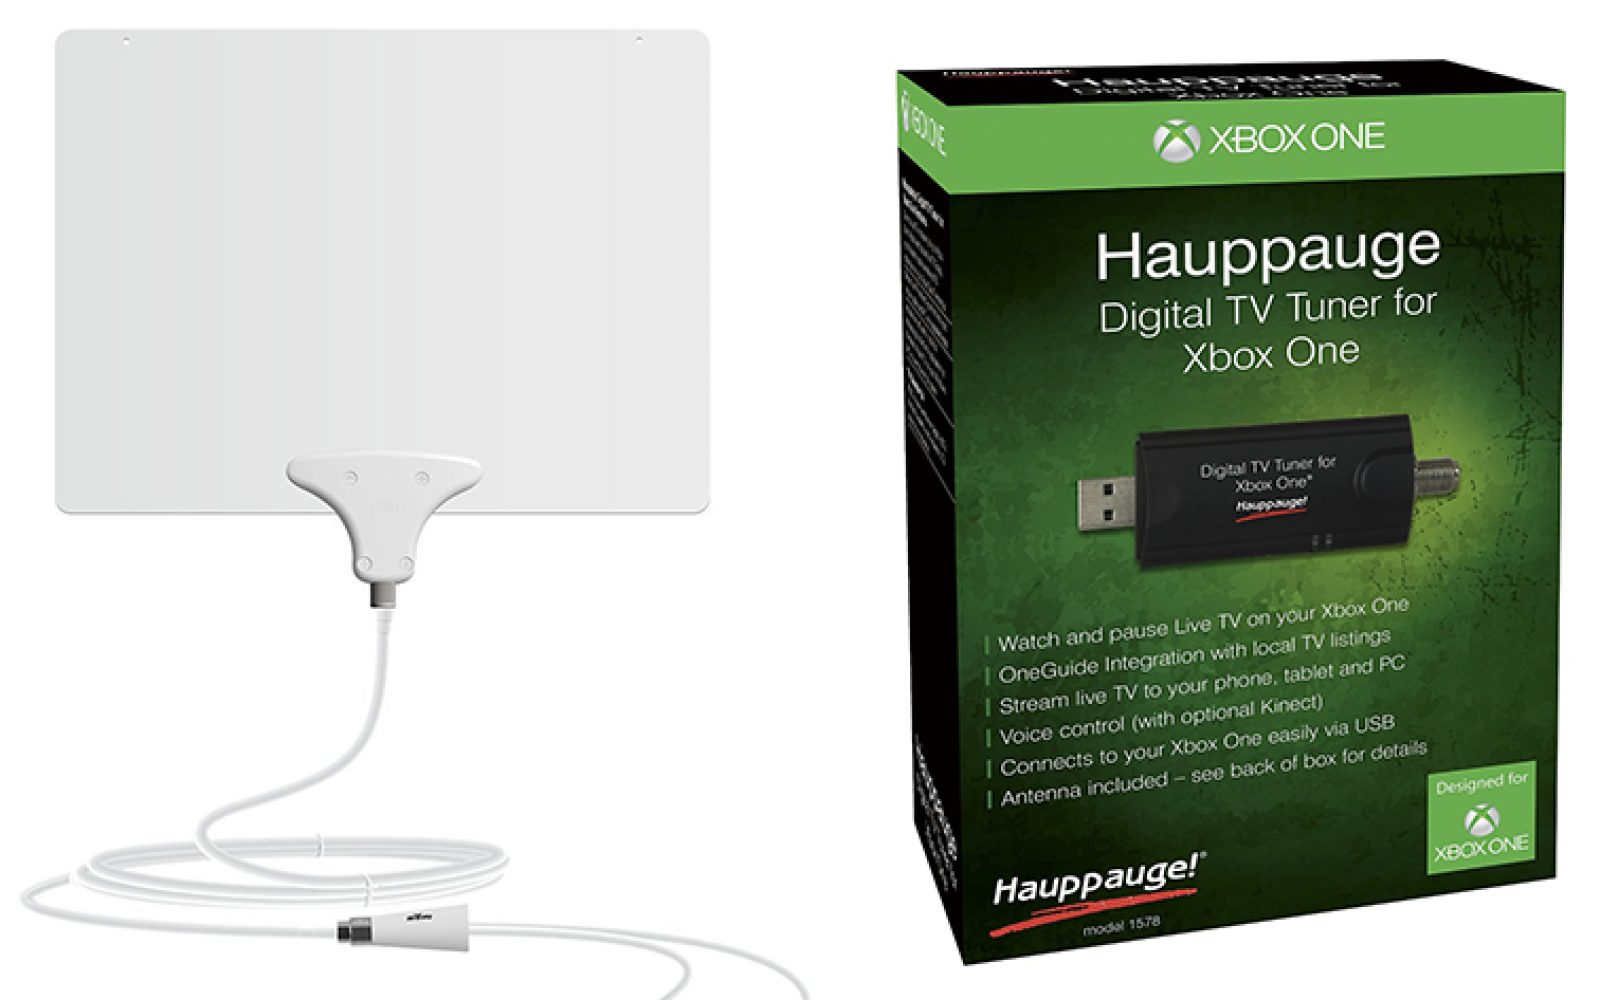 Now any Xbox One can receive over-the-air HD channels with